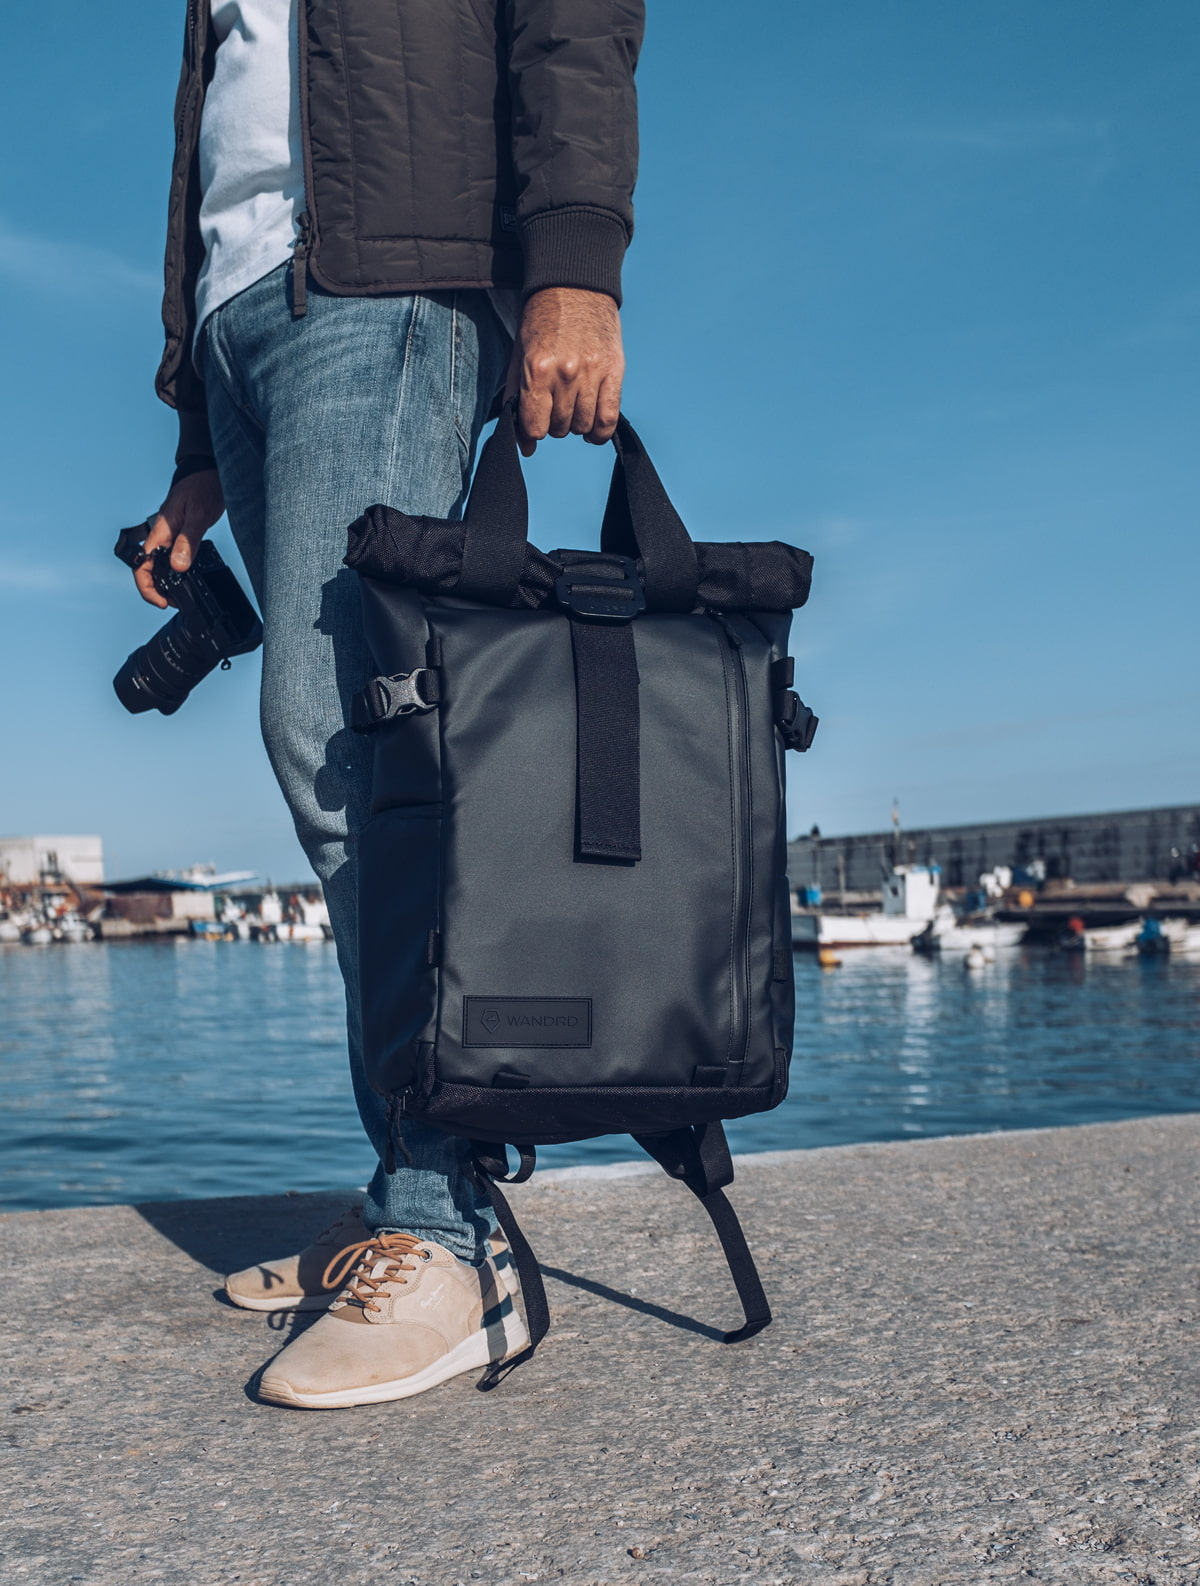 Best Backpack for Travel and Photography